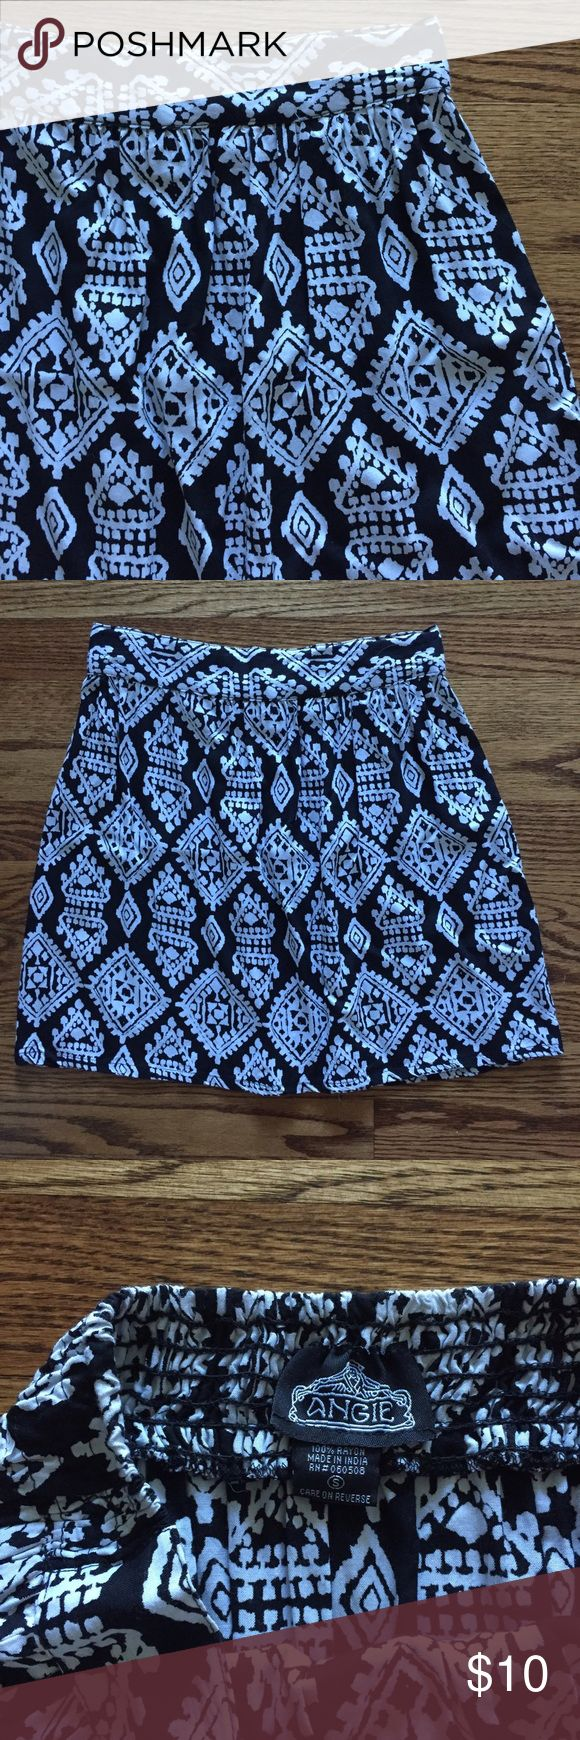 tribal print skirt black and white tribal print skirt | lightweight | worn once for a few hours and in perfect condition Skirts Mini